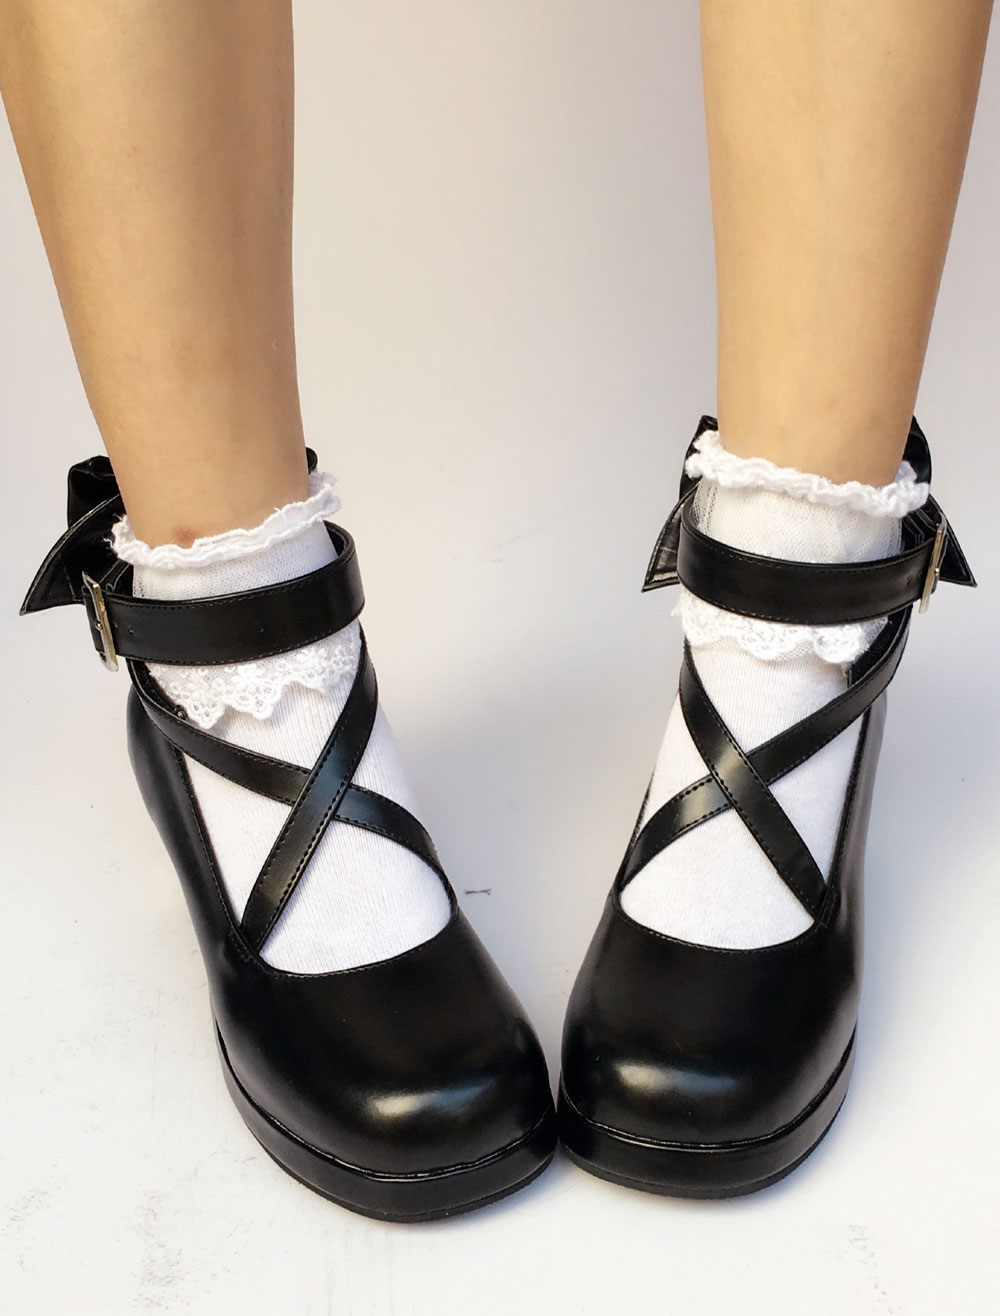 Buy Black Lolita Shoes Round Toe Chunky Heel Cross Front Ankle Strap Bow Lolita Pumps for $61.19 in Milanoo store